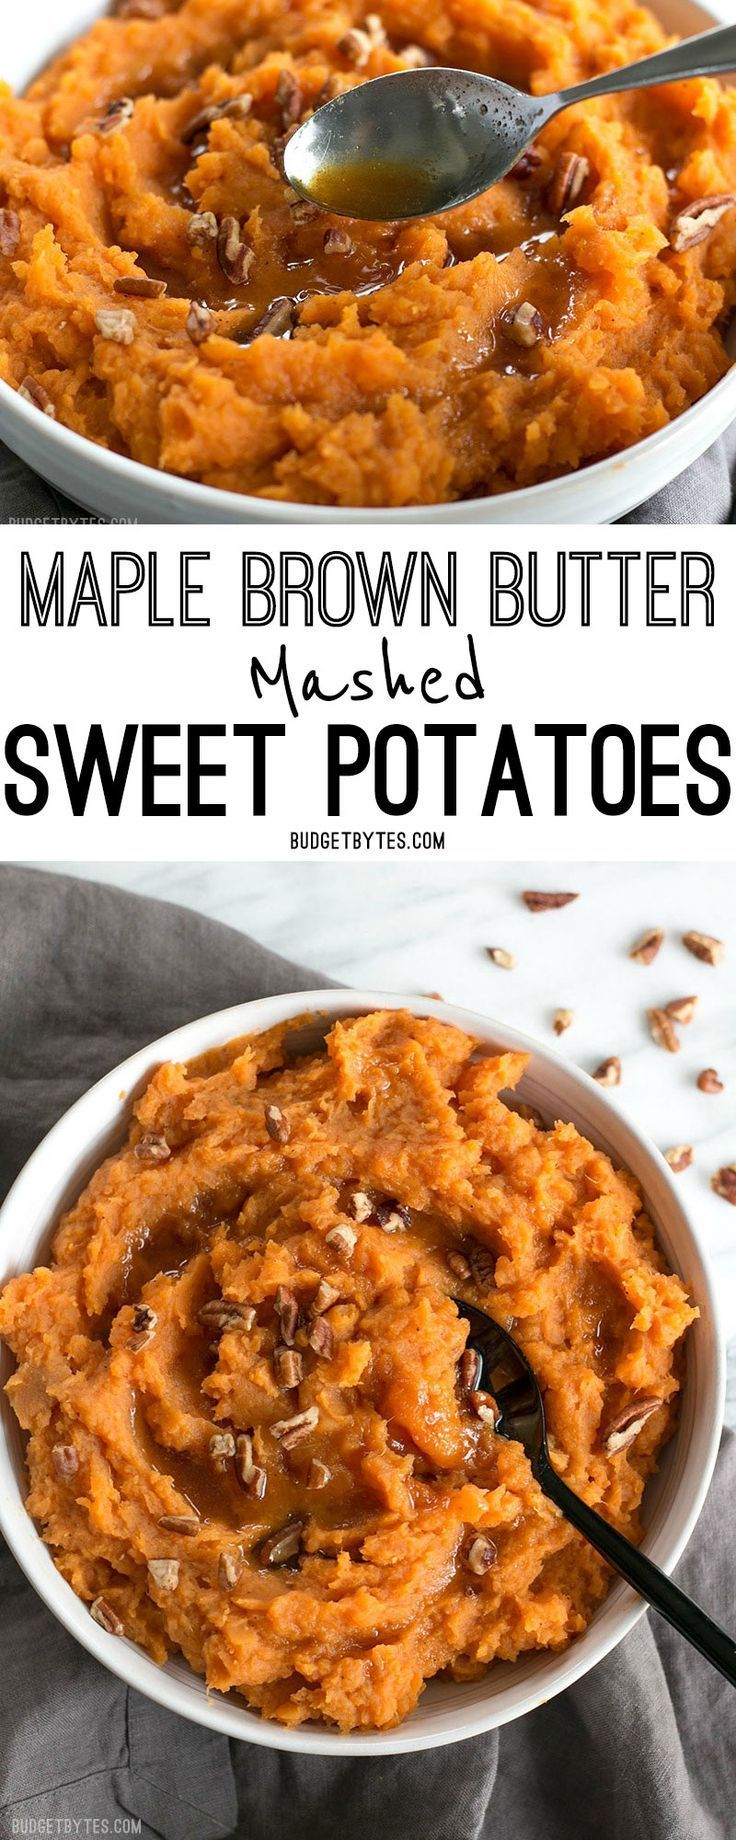 Maple Brown Butter Mashed Sweet Potatoes are a simple way to add a little something extra special to your Thanksgiving table. @budgetbytes